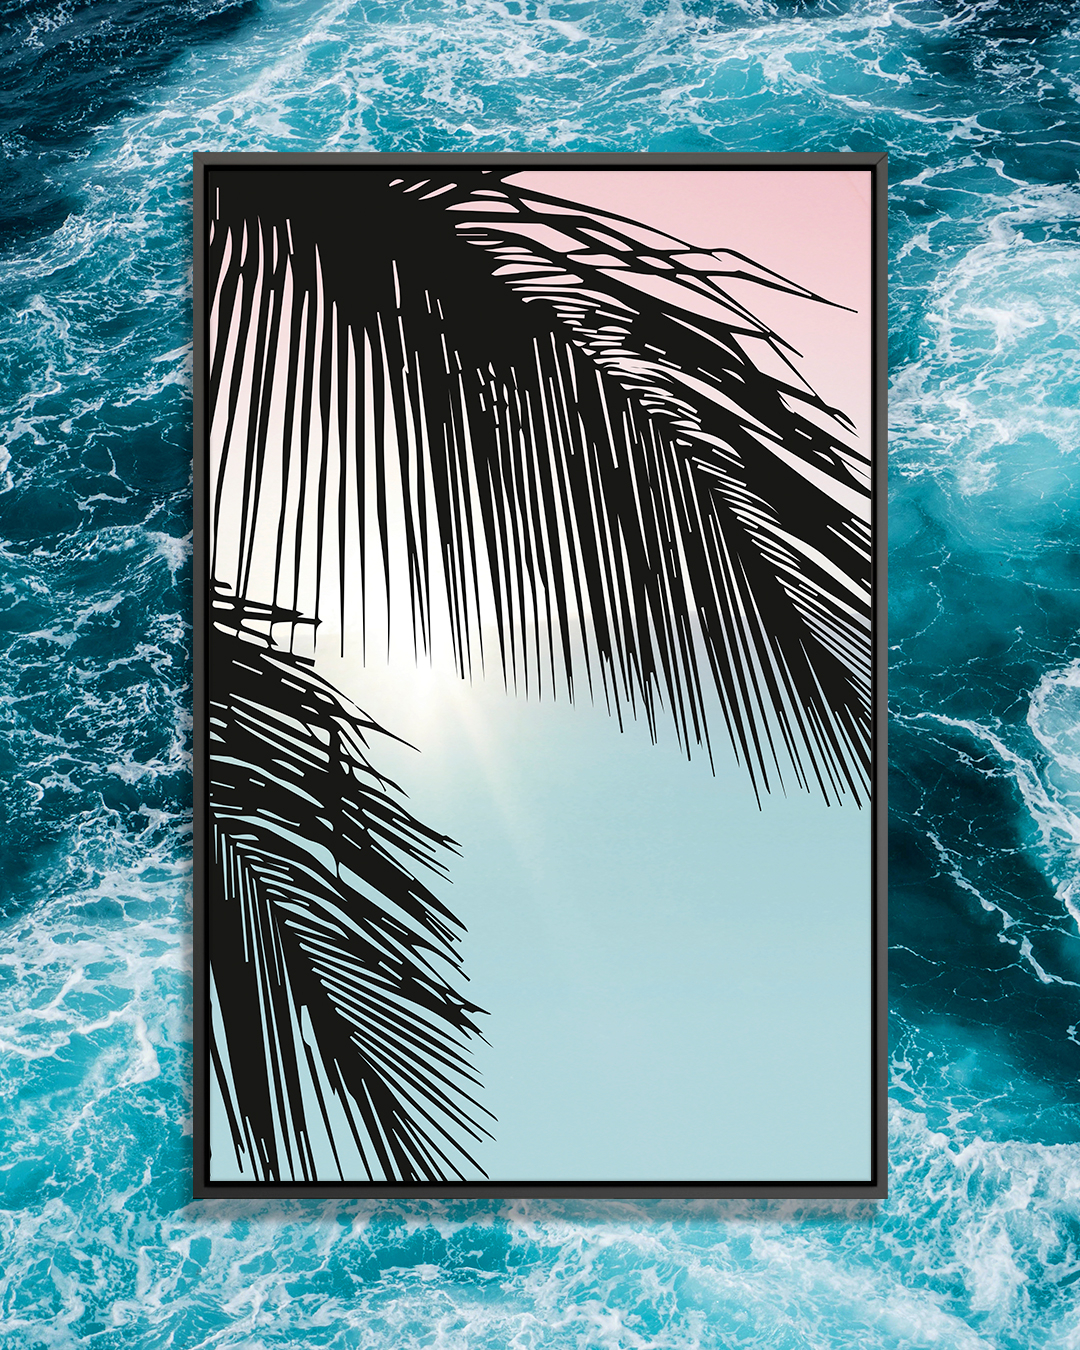 """""""Aloha"""" by Amy & Kurt Berlin shows black palm leaves in front of a blue and pink background."""